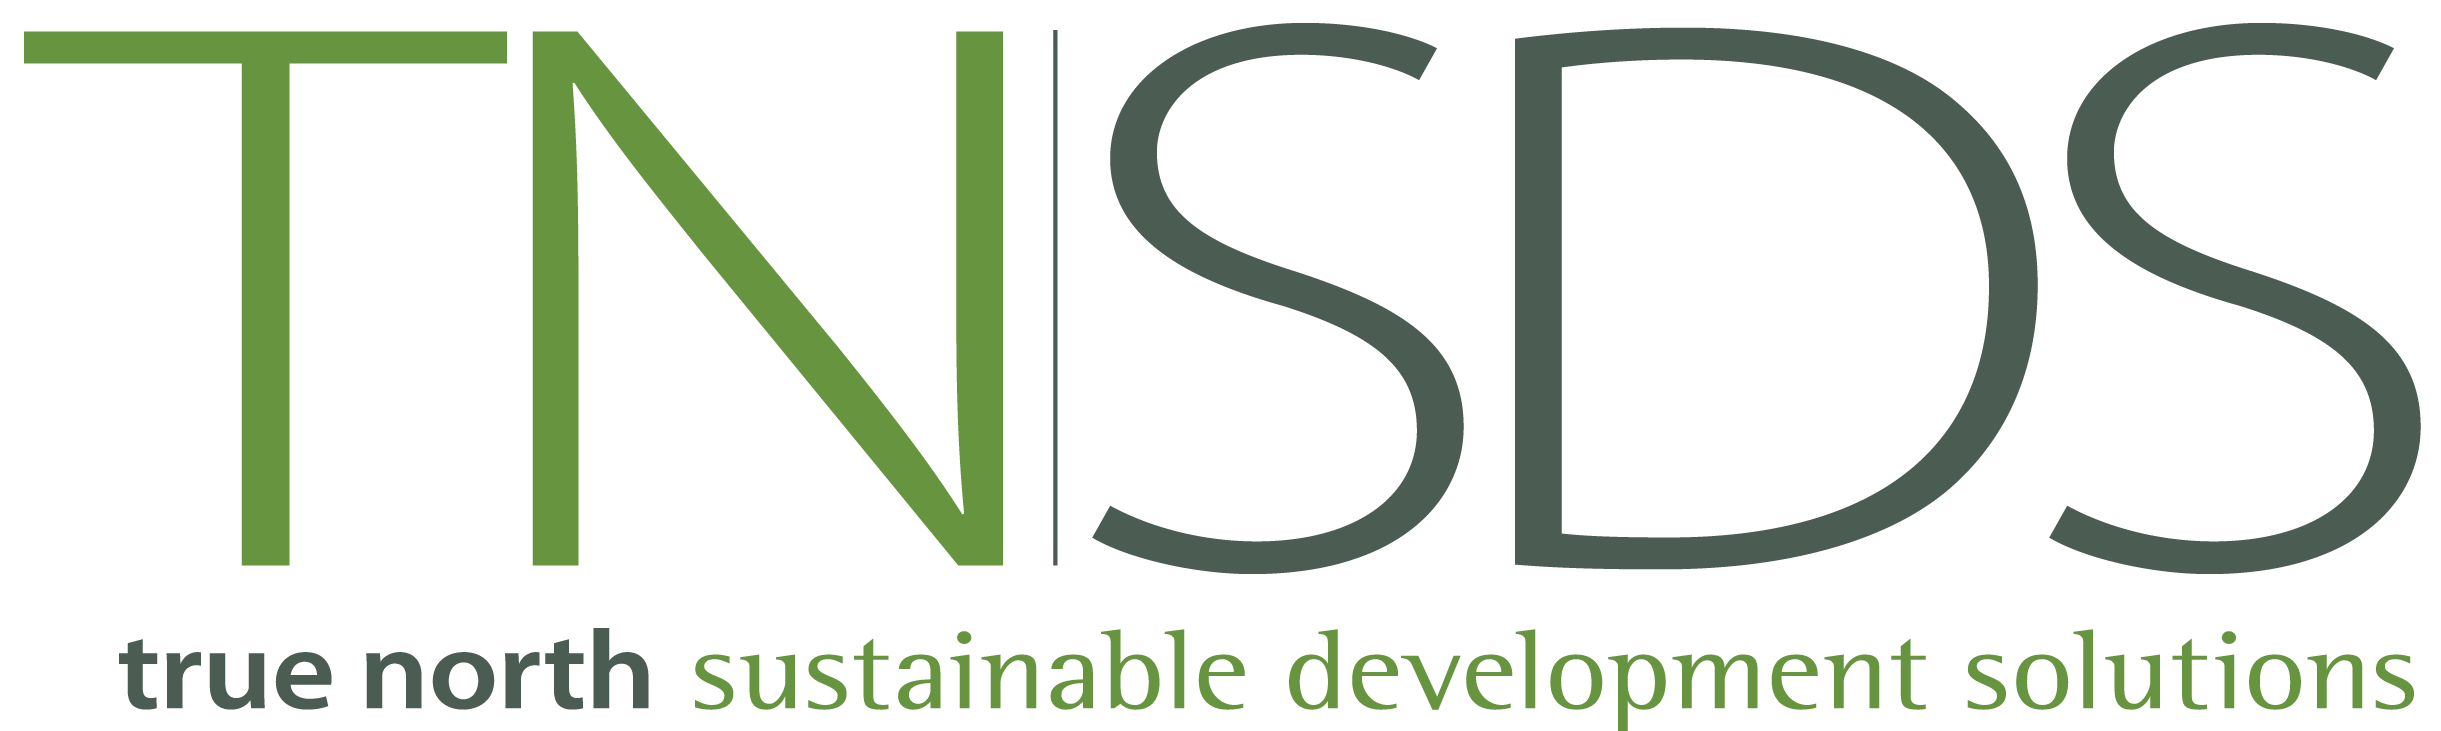 True North Sustainable Development Solutions